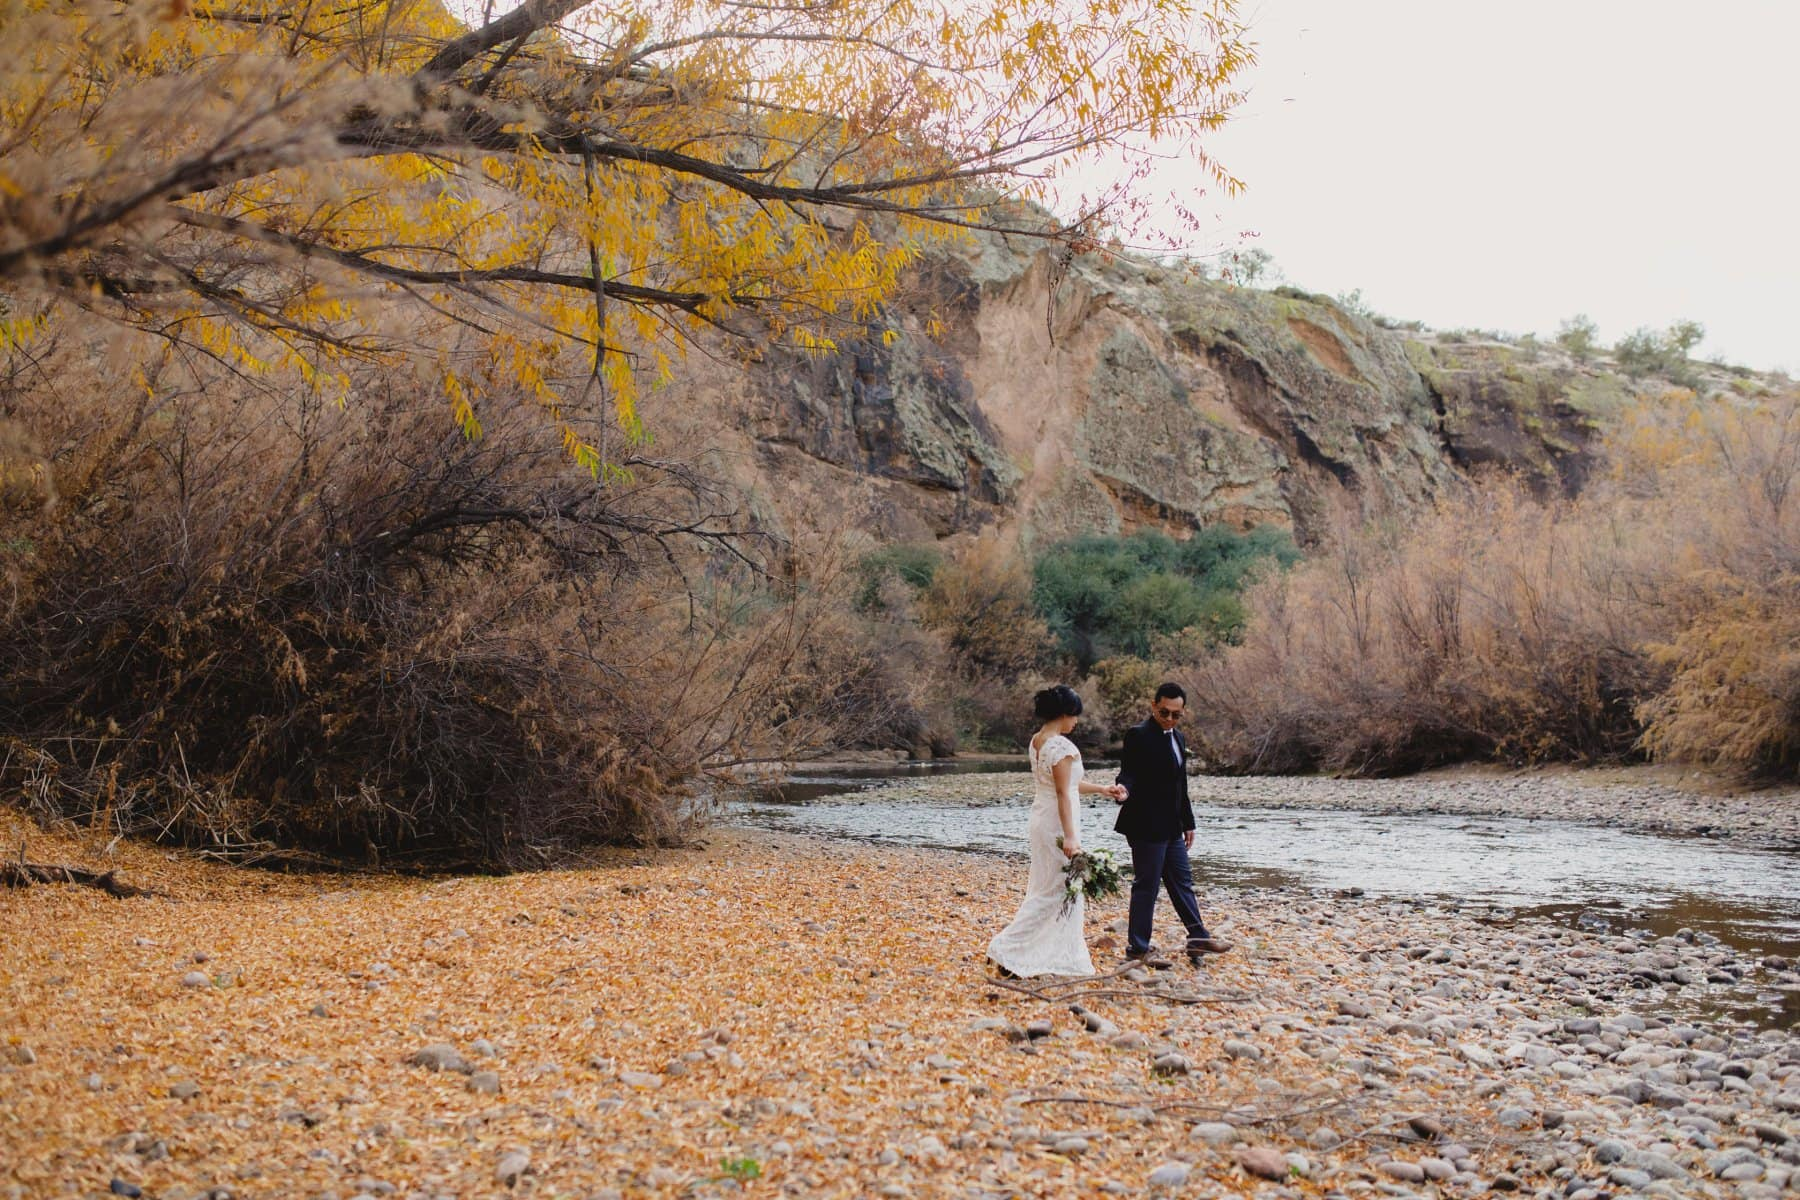 outdoorsy wedding location in Arizona